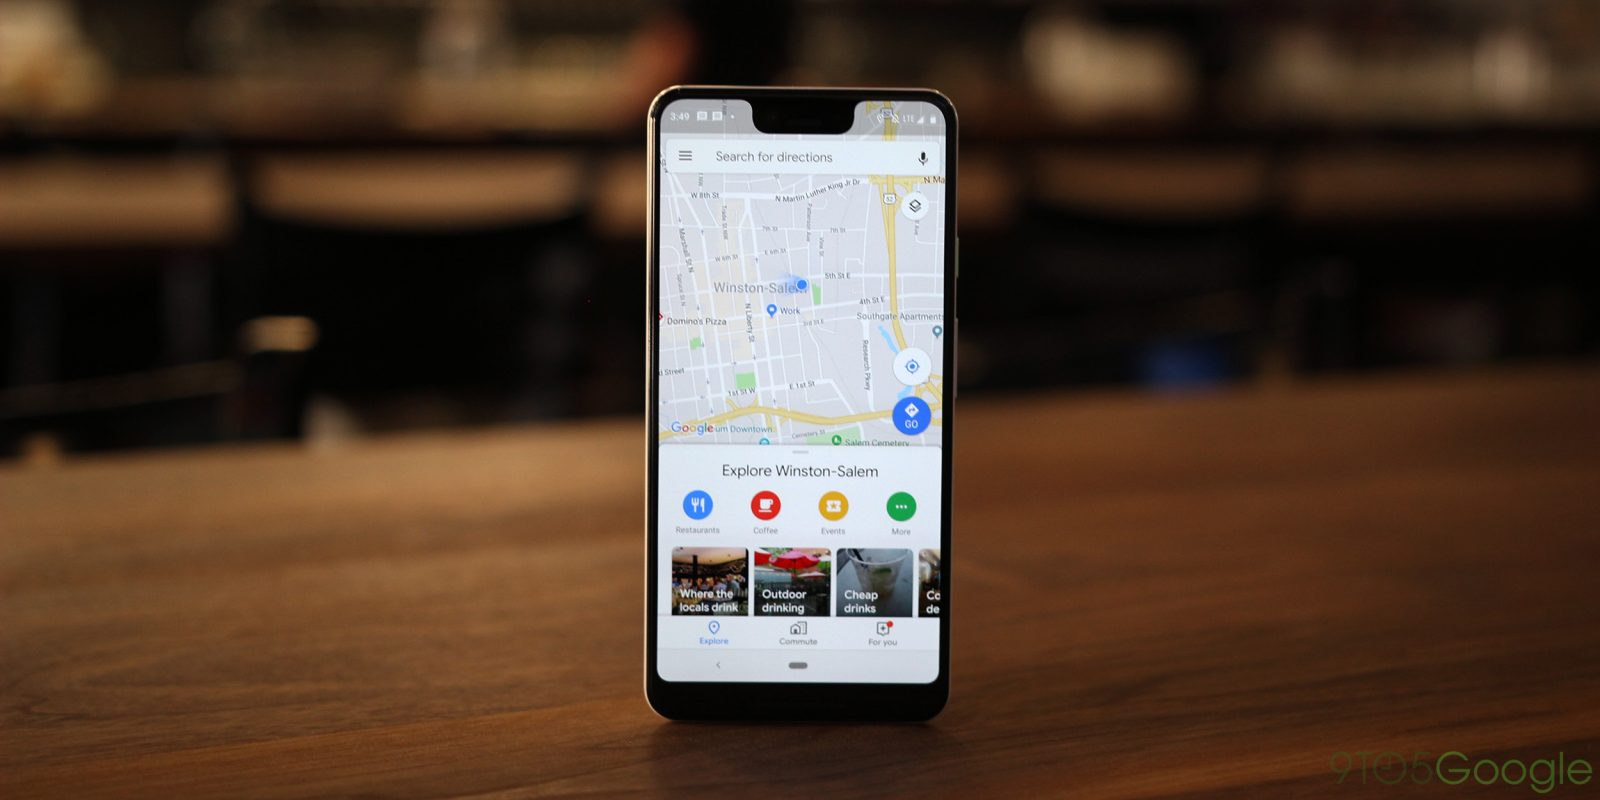 Google Maps is testing its incognito mode with some users now